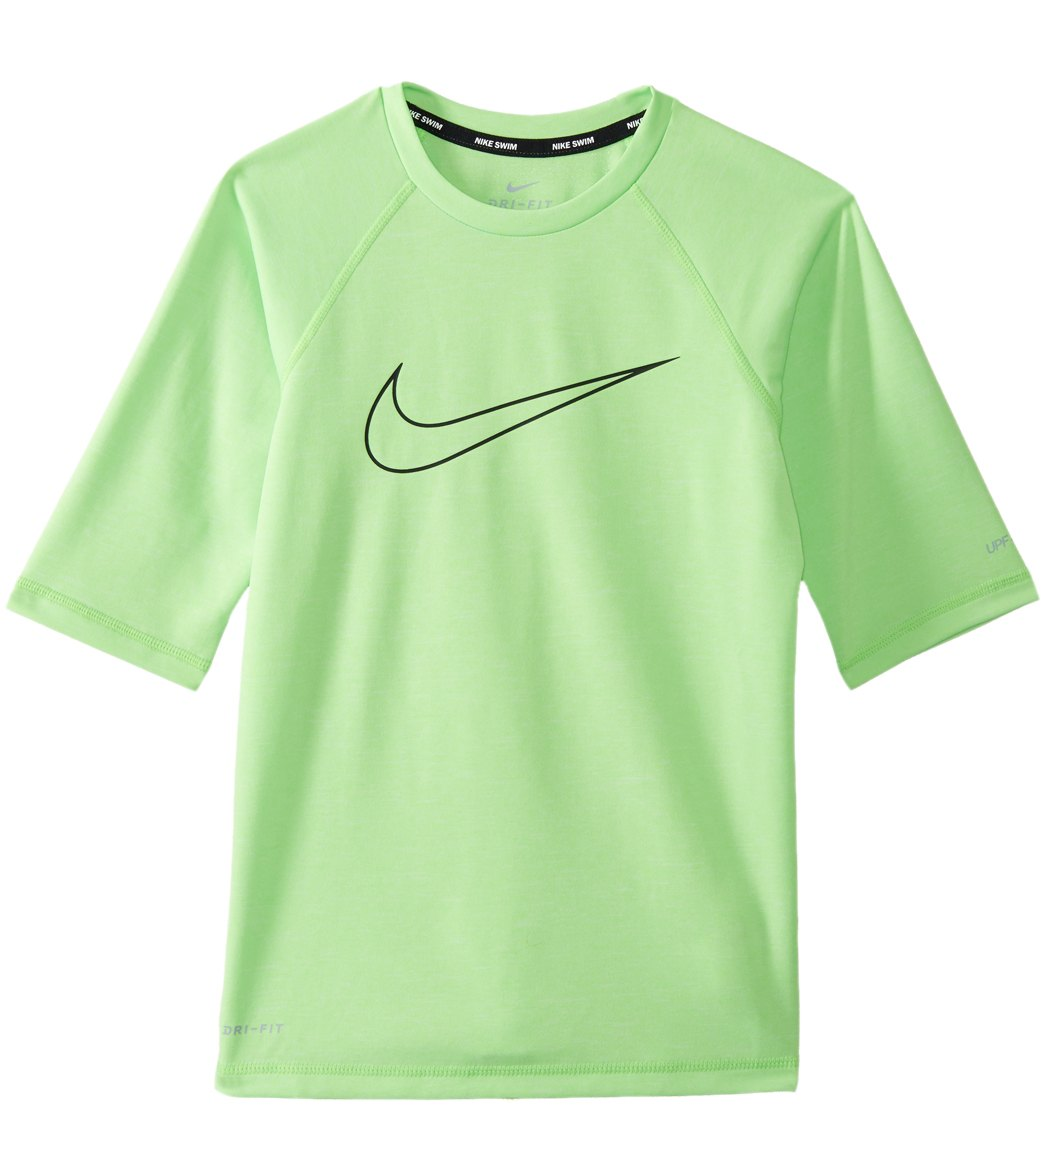 02f3d6a61 Nike Boys' Half Sleeve Hydroguard with Swoosh (Big Kid) at SwimOutlet.com